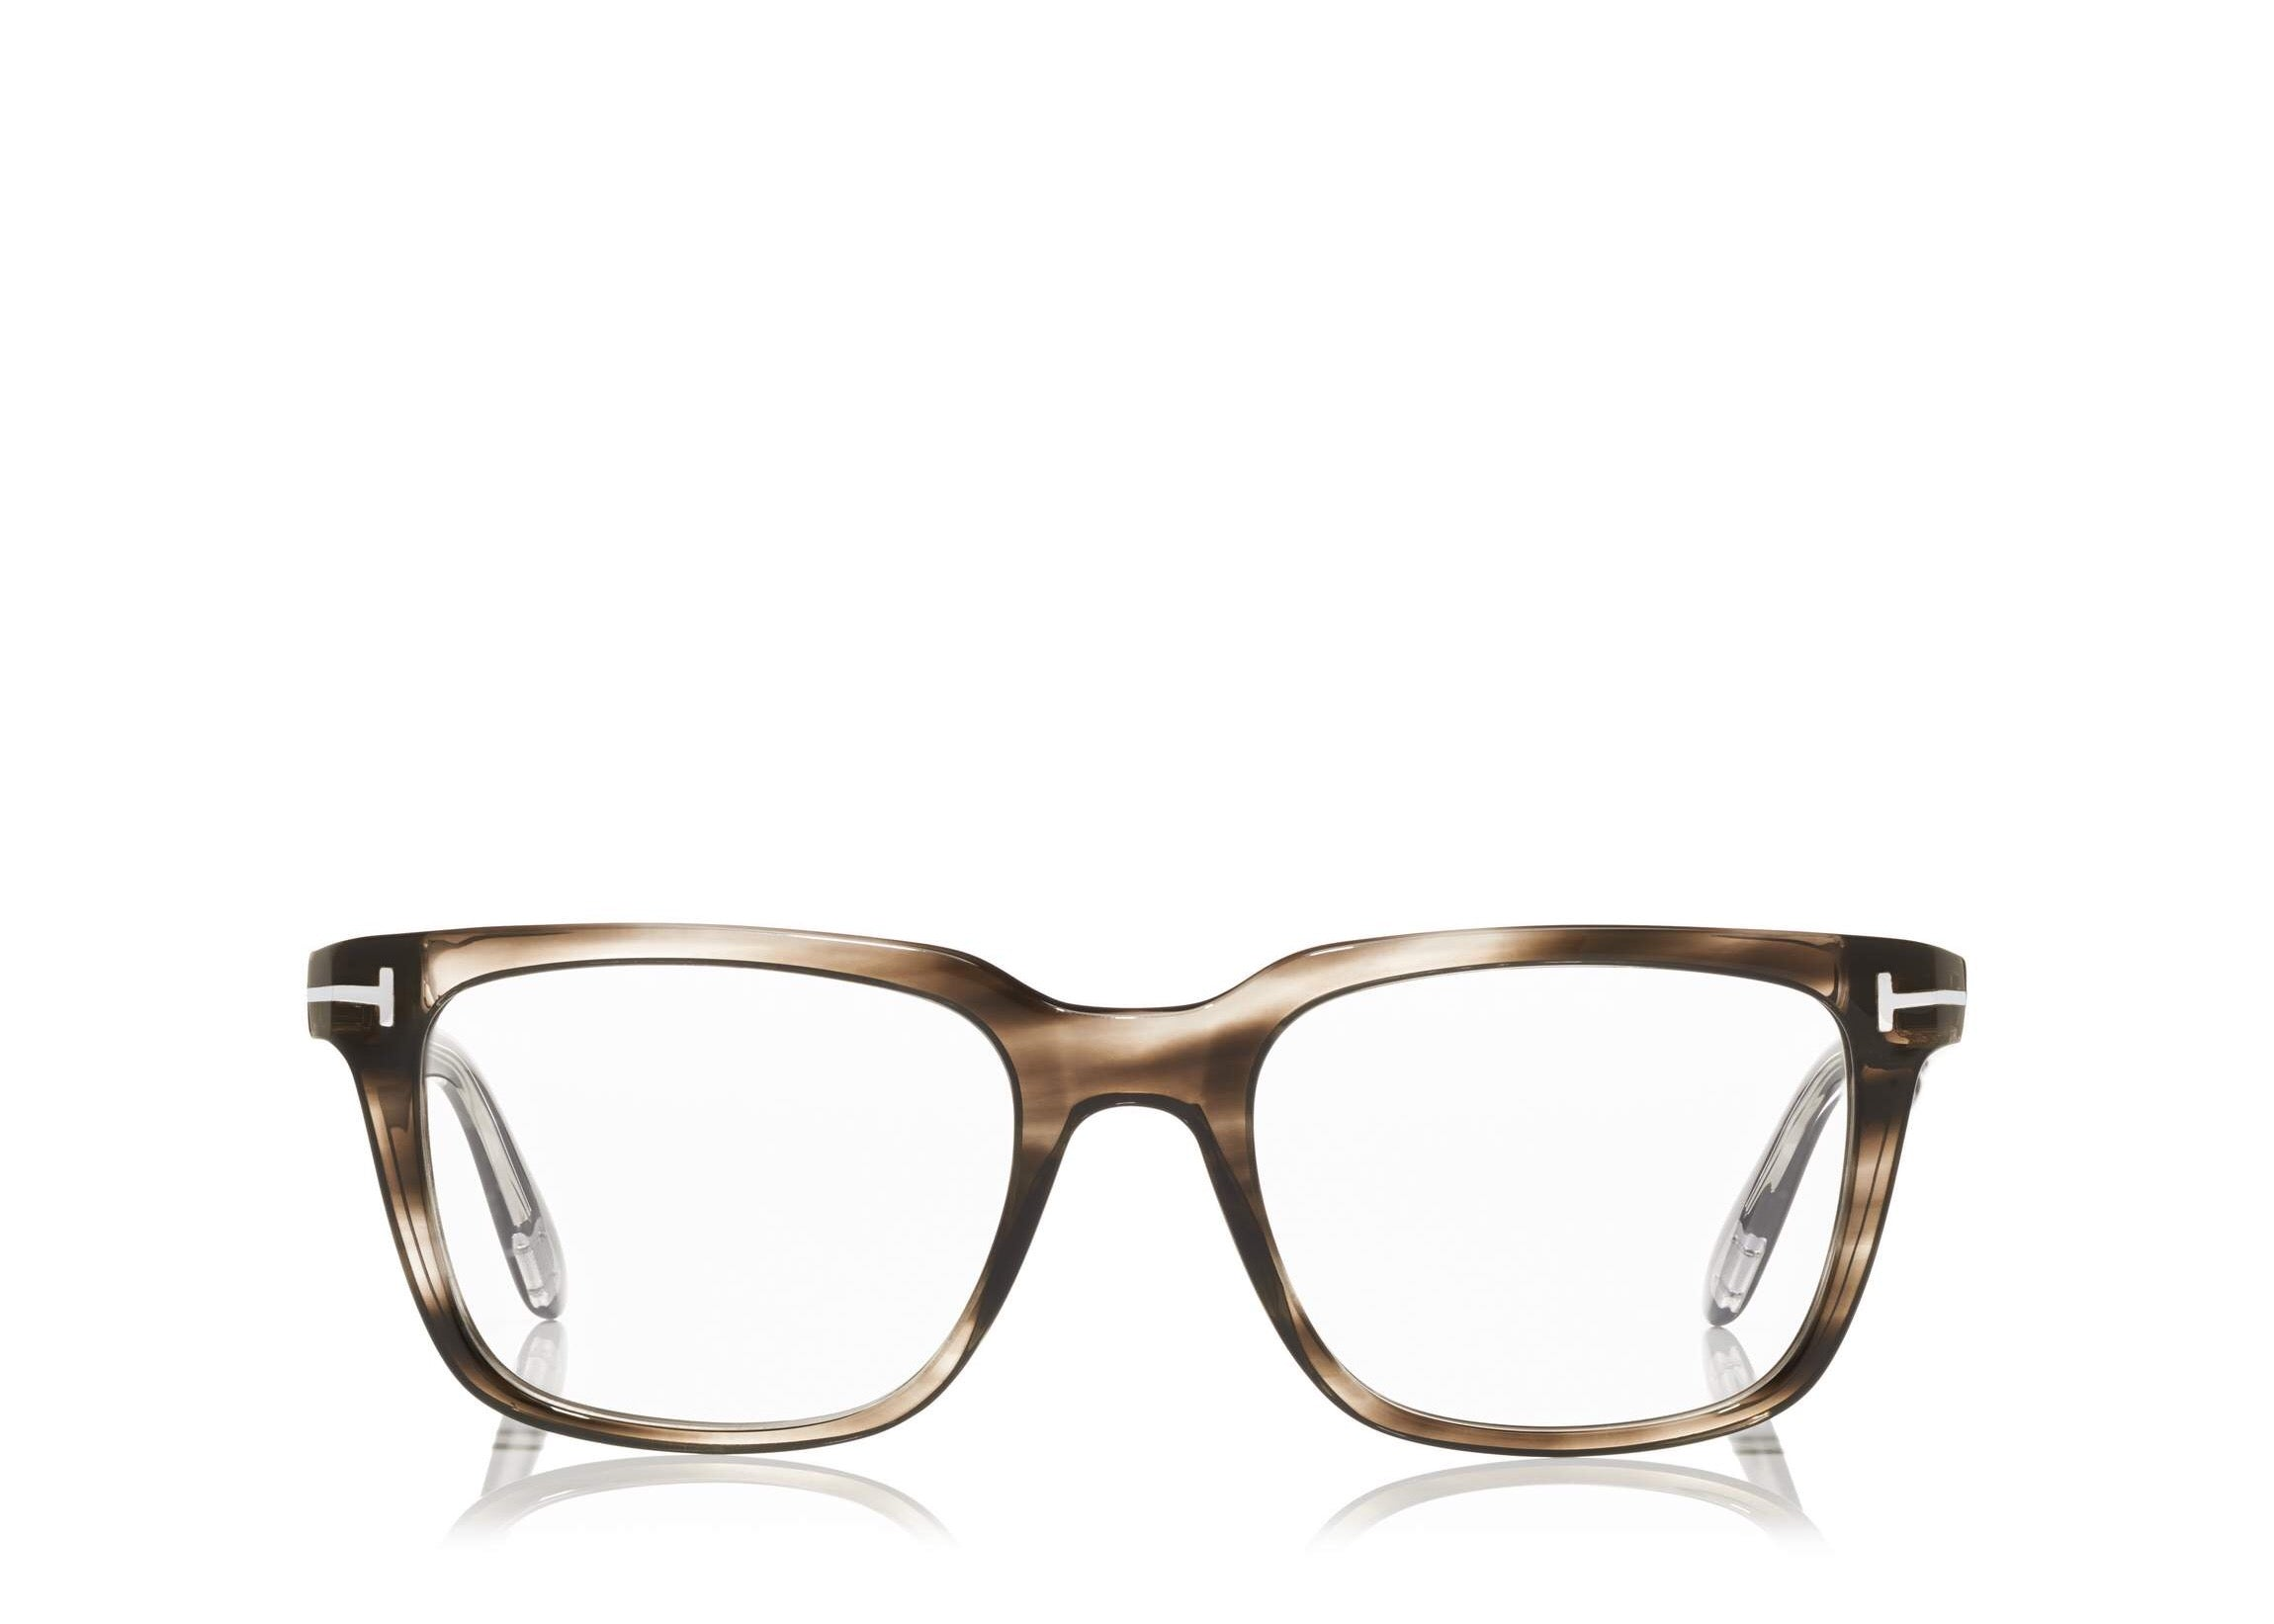 73542d47a35 FT-5304 Men s Grey Square-Frame Optical Glasses